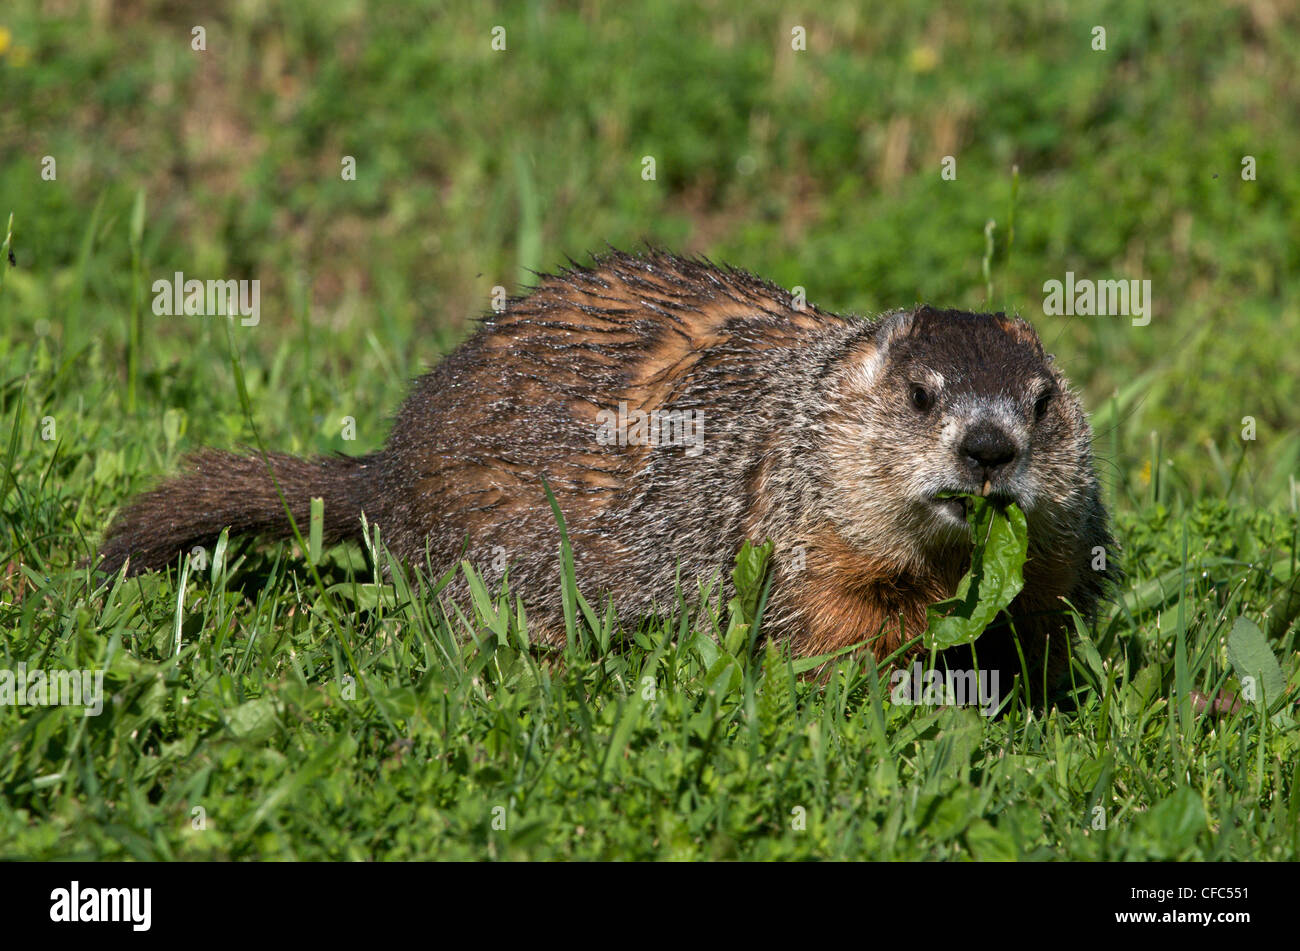 Woodchuck or groundhog (Marmota monax) sitting in summer grasses while feeding on dandelion leaves. Ontario, Canada. - Stock Image